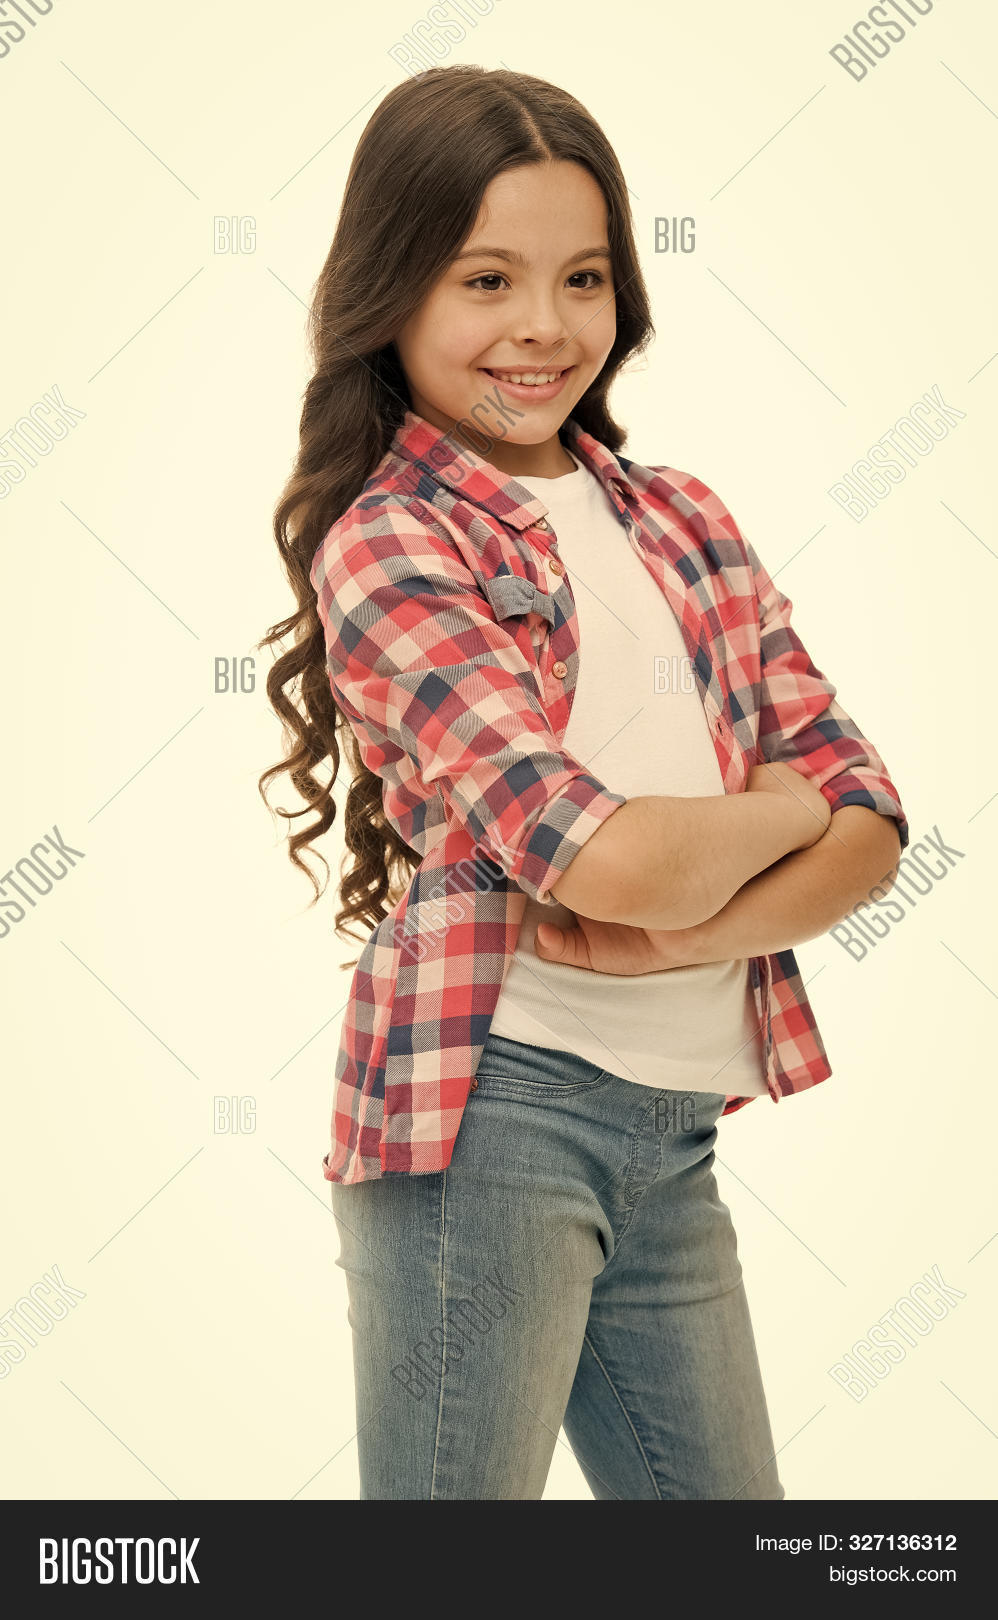 Kid girl long curly hair posing confidently. Girl curly hairstyle smiling face feels confident. Child hold hands confidently crossed chest. Upbringing confidence. Feel so confident with new hairstyle.